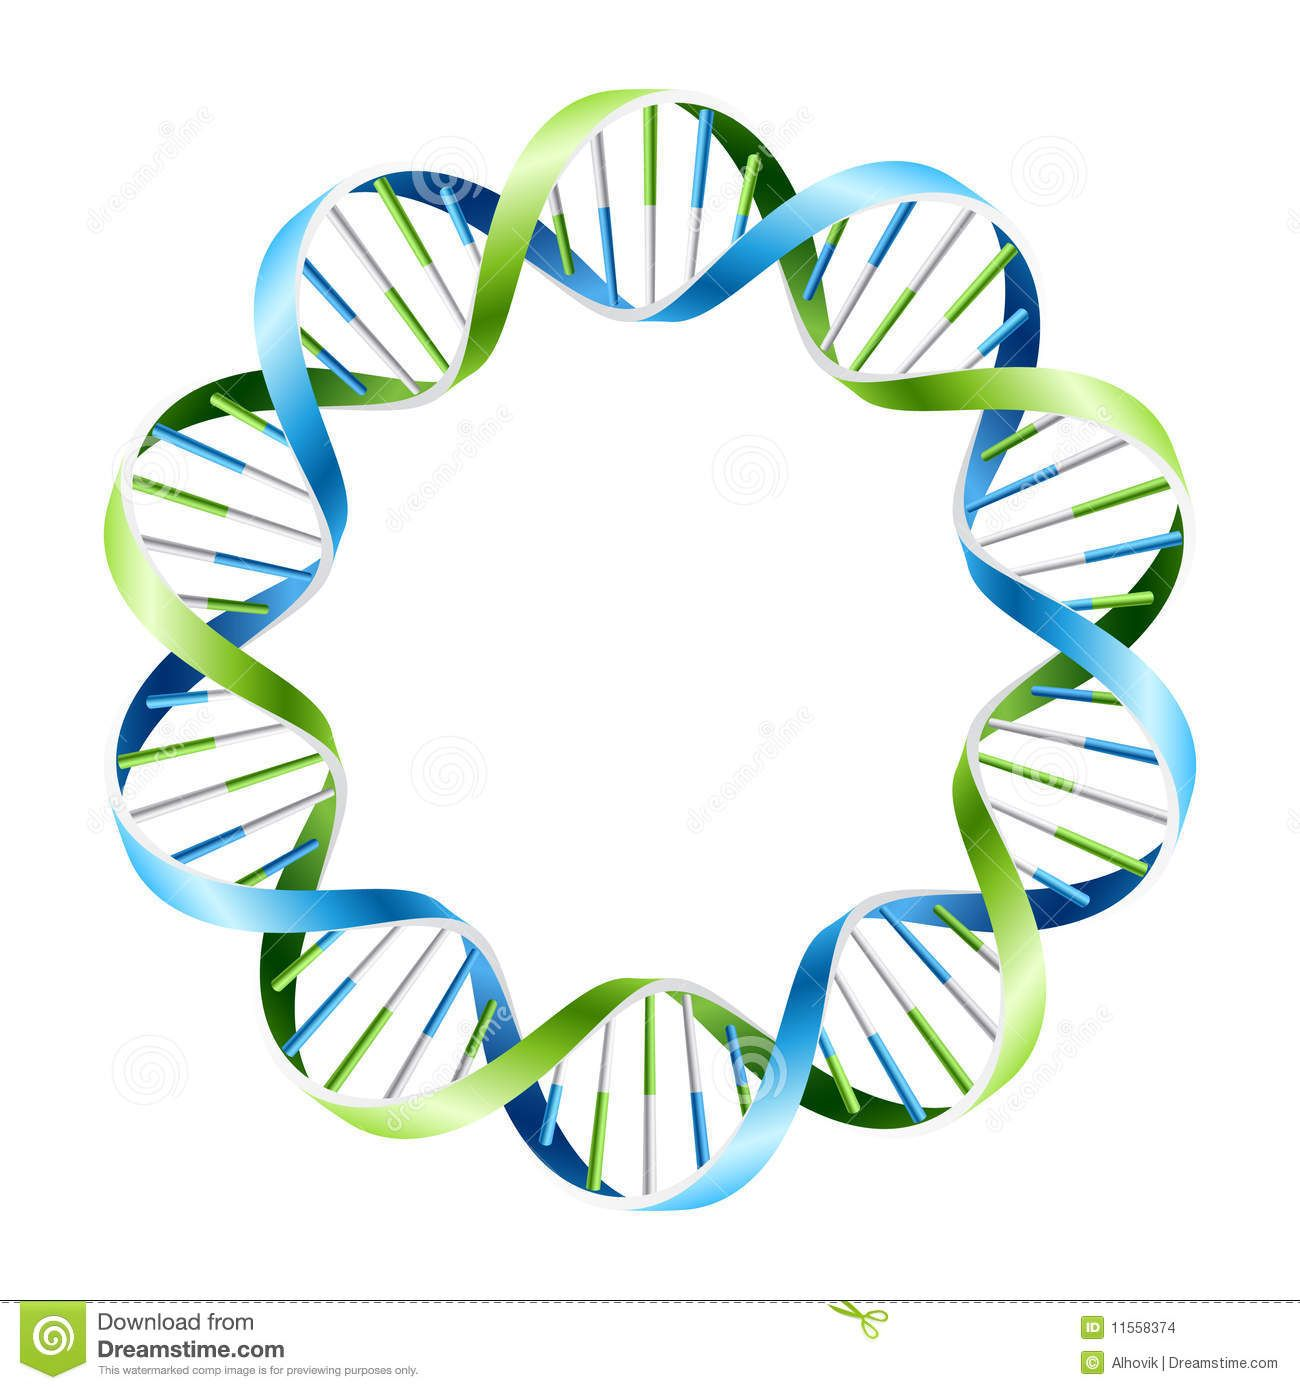 Dna Strands On Circle Download From Over 60 Million High Quality Stock Photos Images Vectors Sign Up For Free Today Image 115583 Dna Dna Art Dna Project